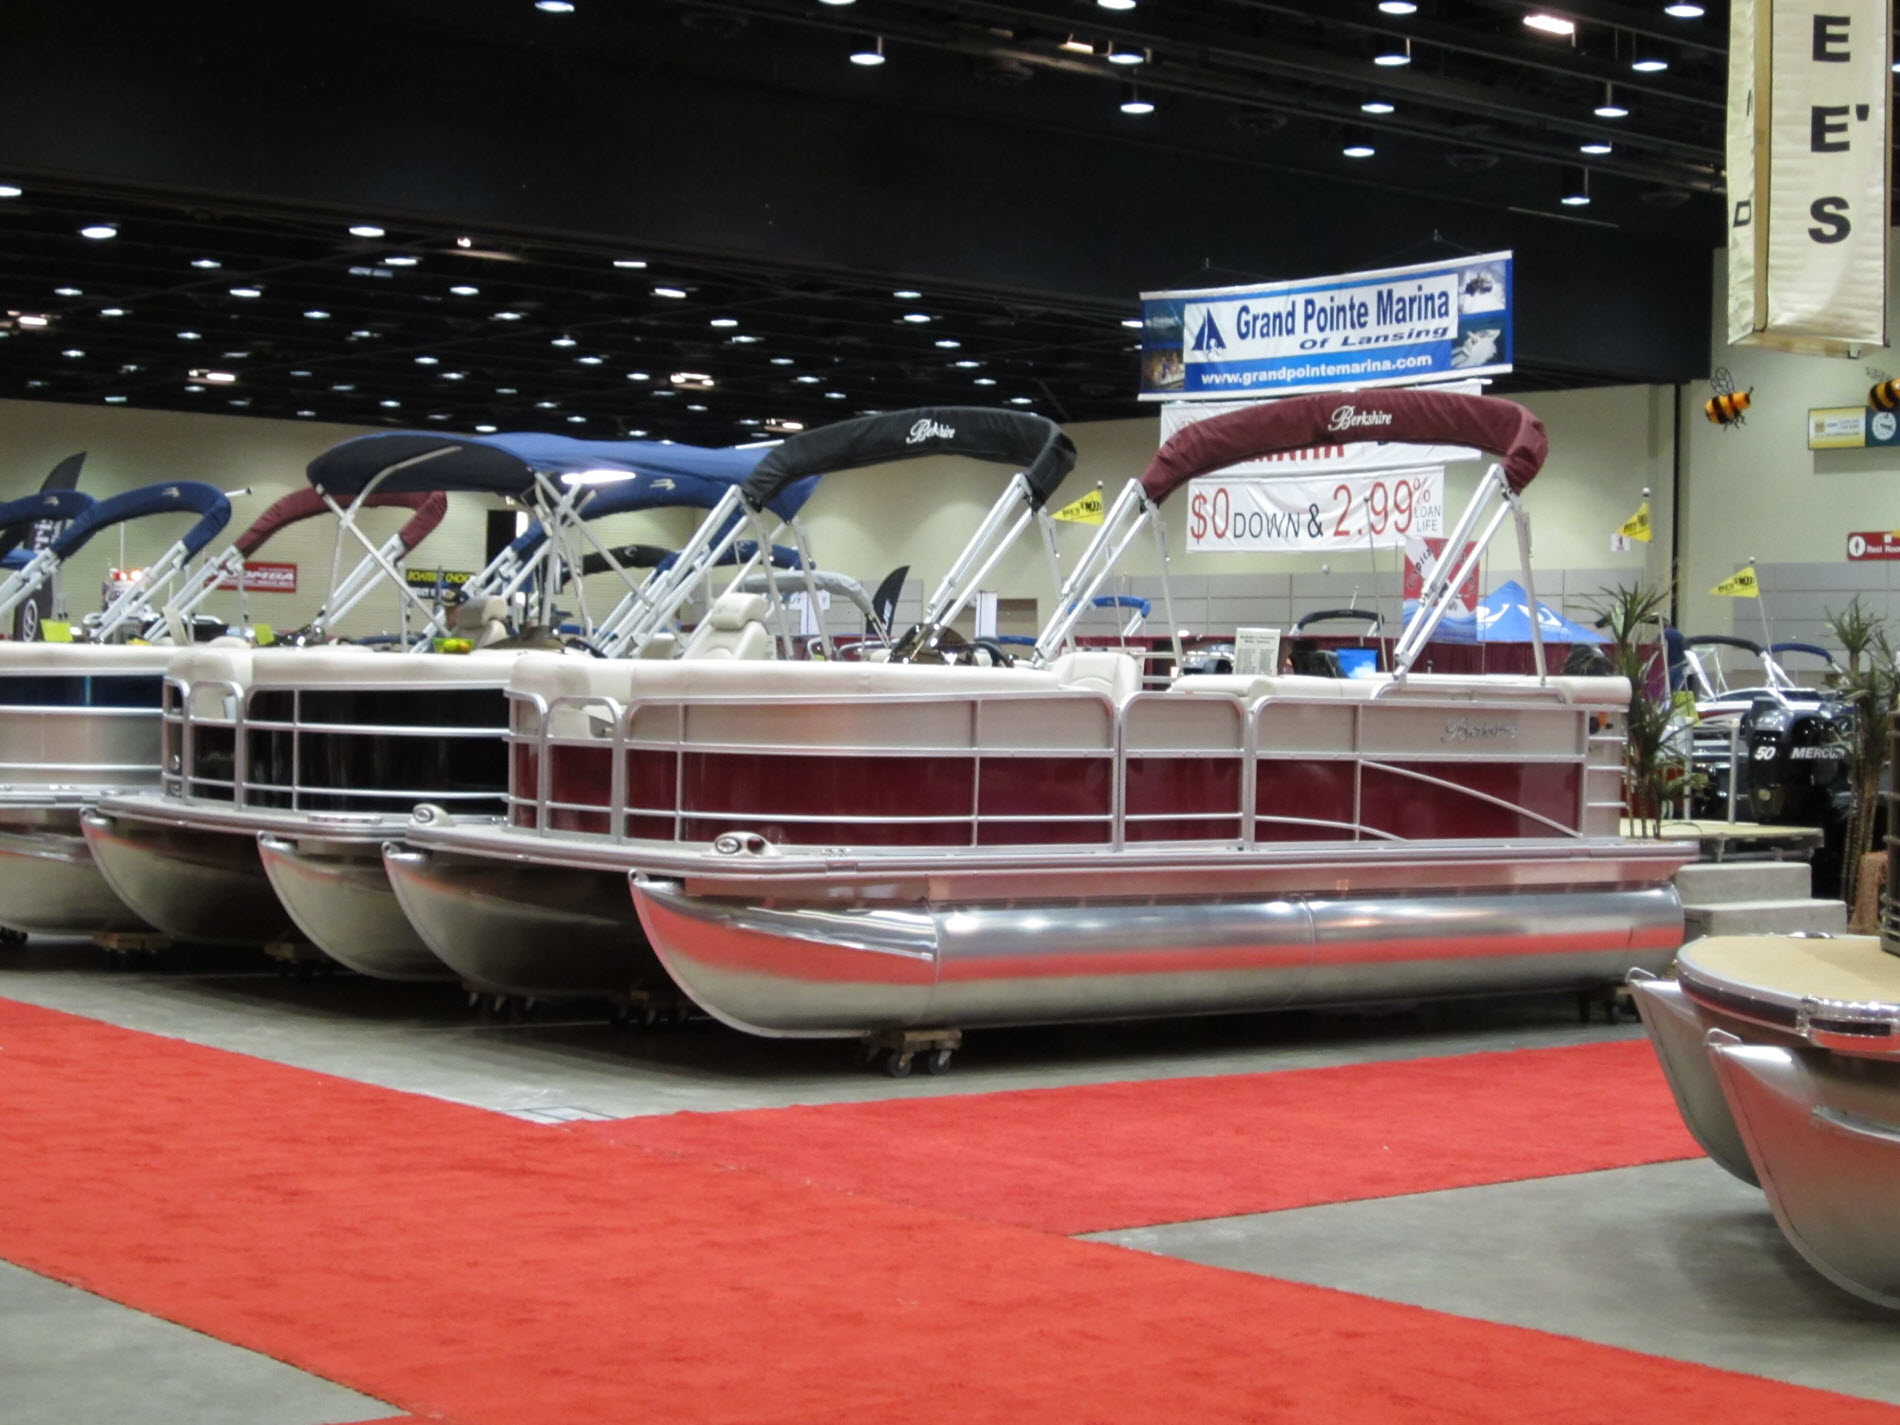 Lansing Boat Show at the Lansing Center